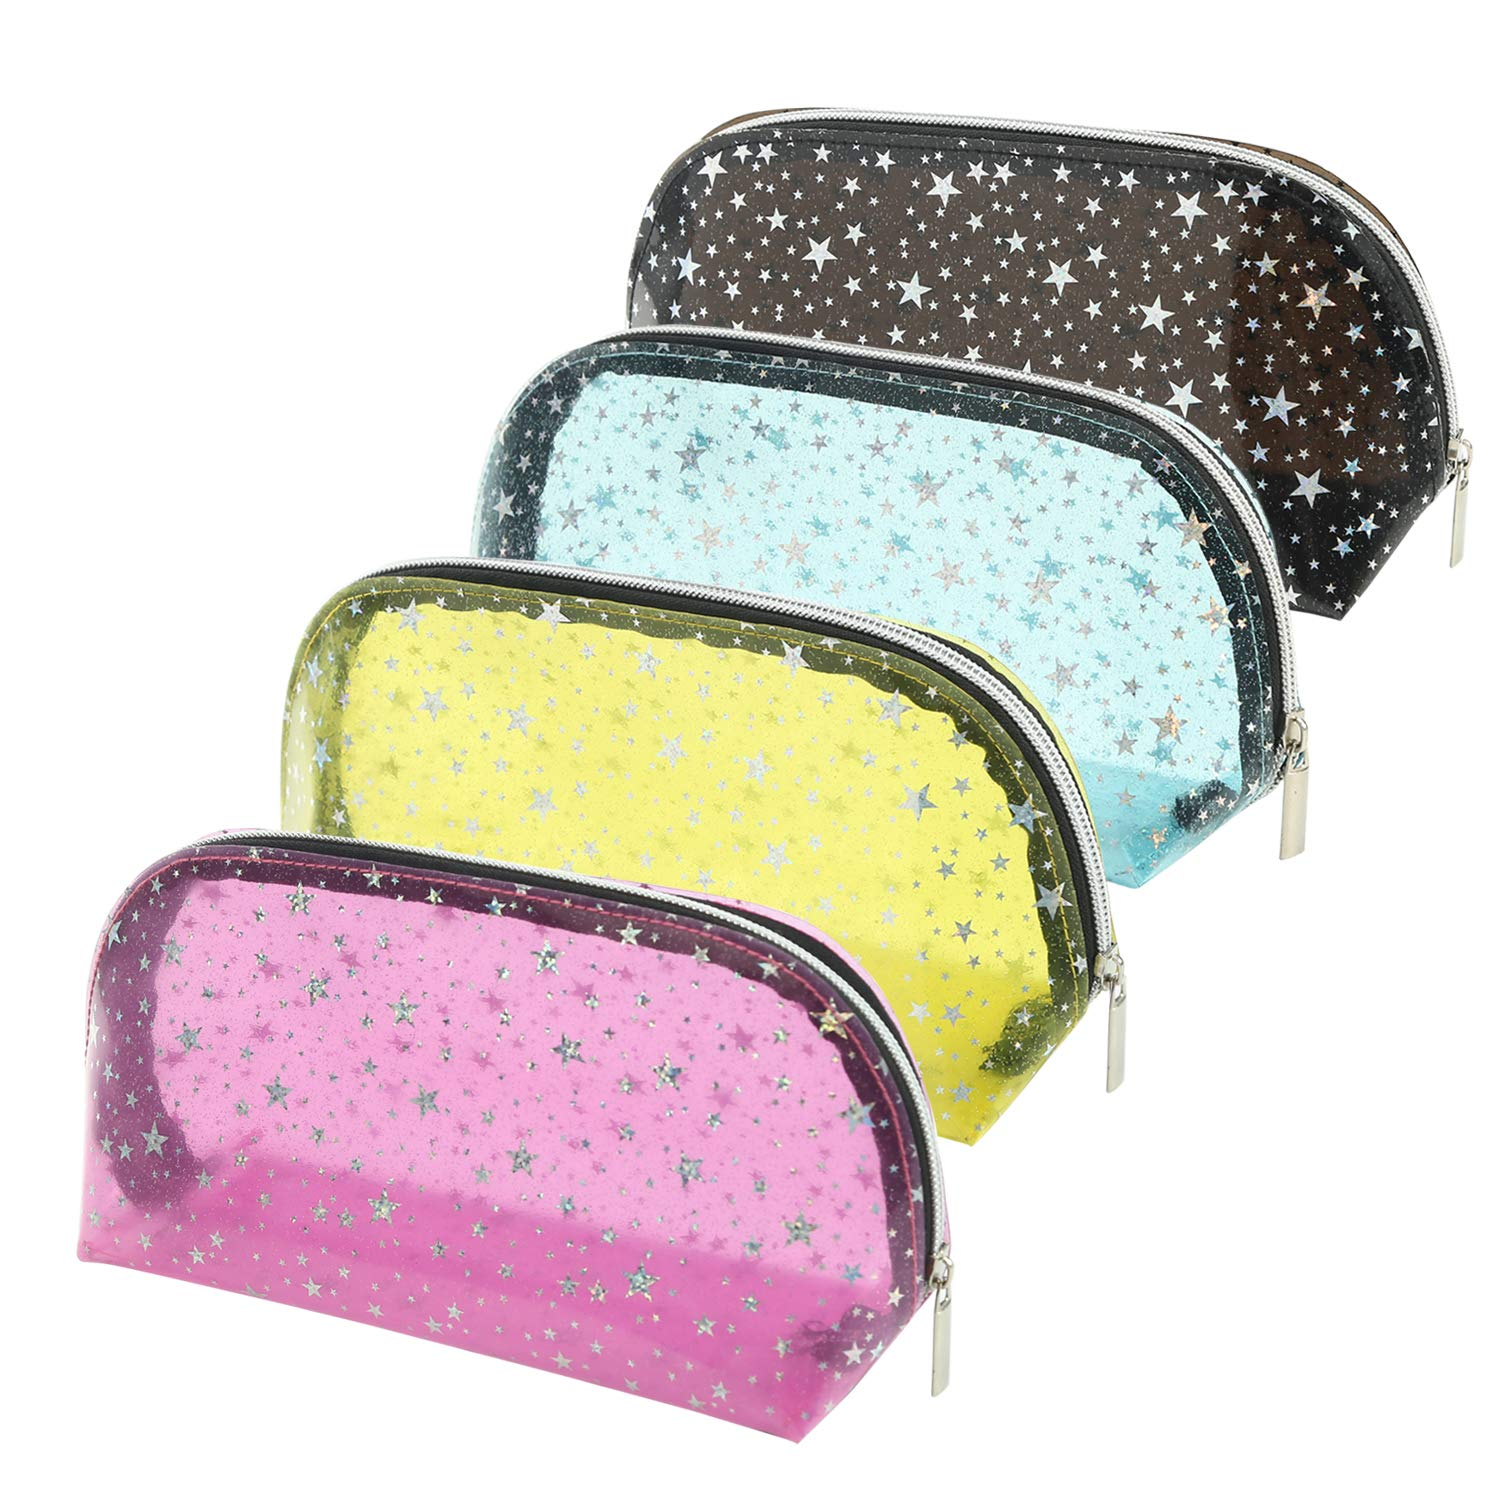 4Pcs Women Stylish Cosmetic Bag Waterproof PVC Zippered Travel Toiletry Bag Clear Makeup Bags Pouch for Bathroom, Vacation and Organizing